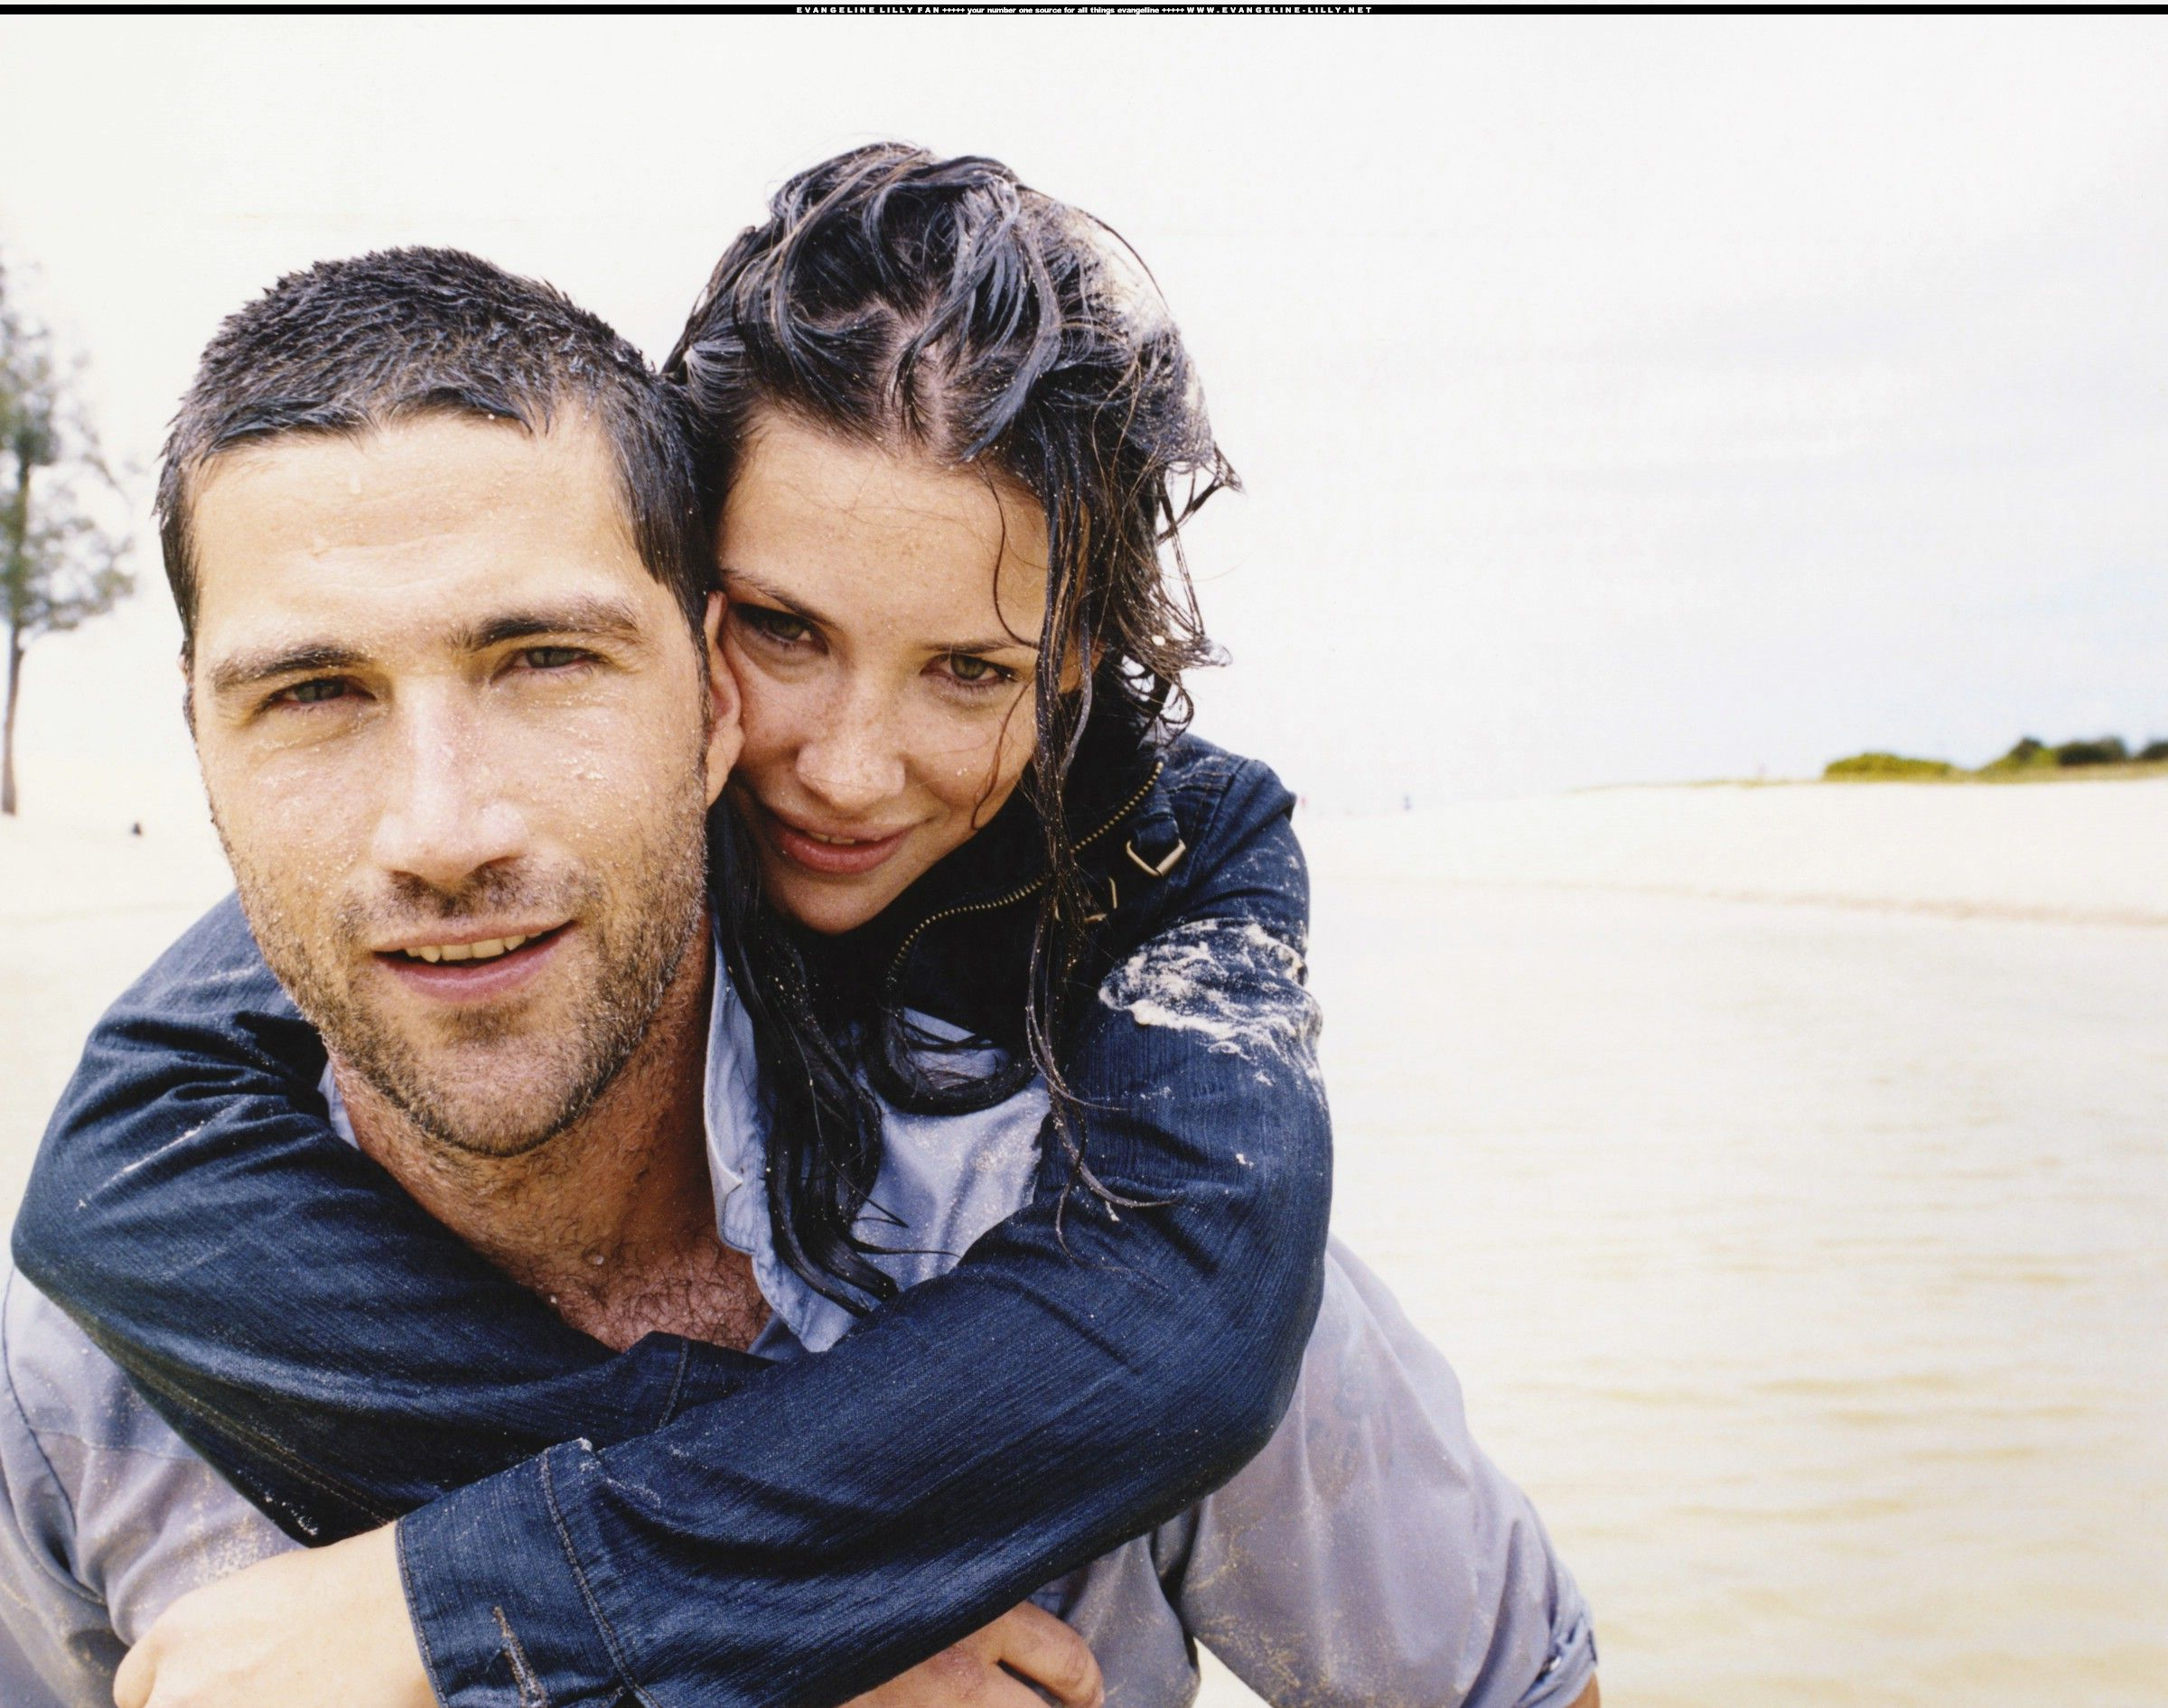 Matthew Fox - Young Celebrities - Pinterest - Matthew Fox